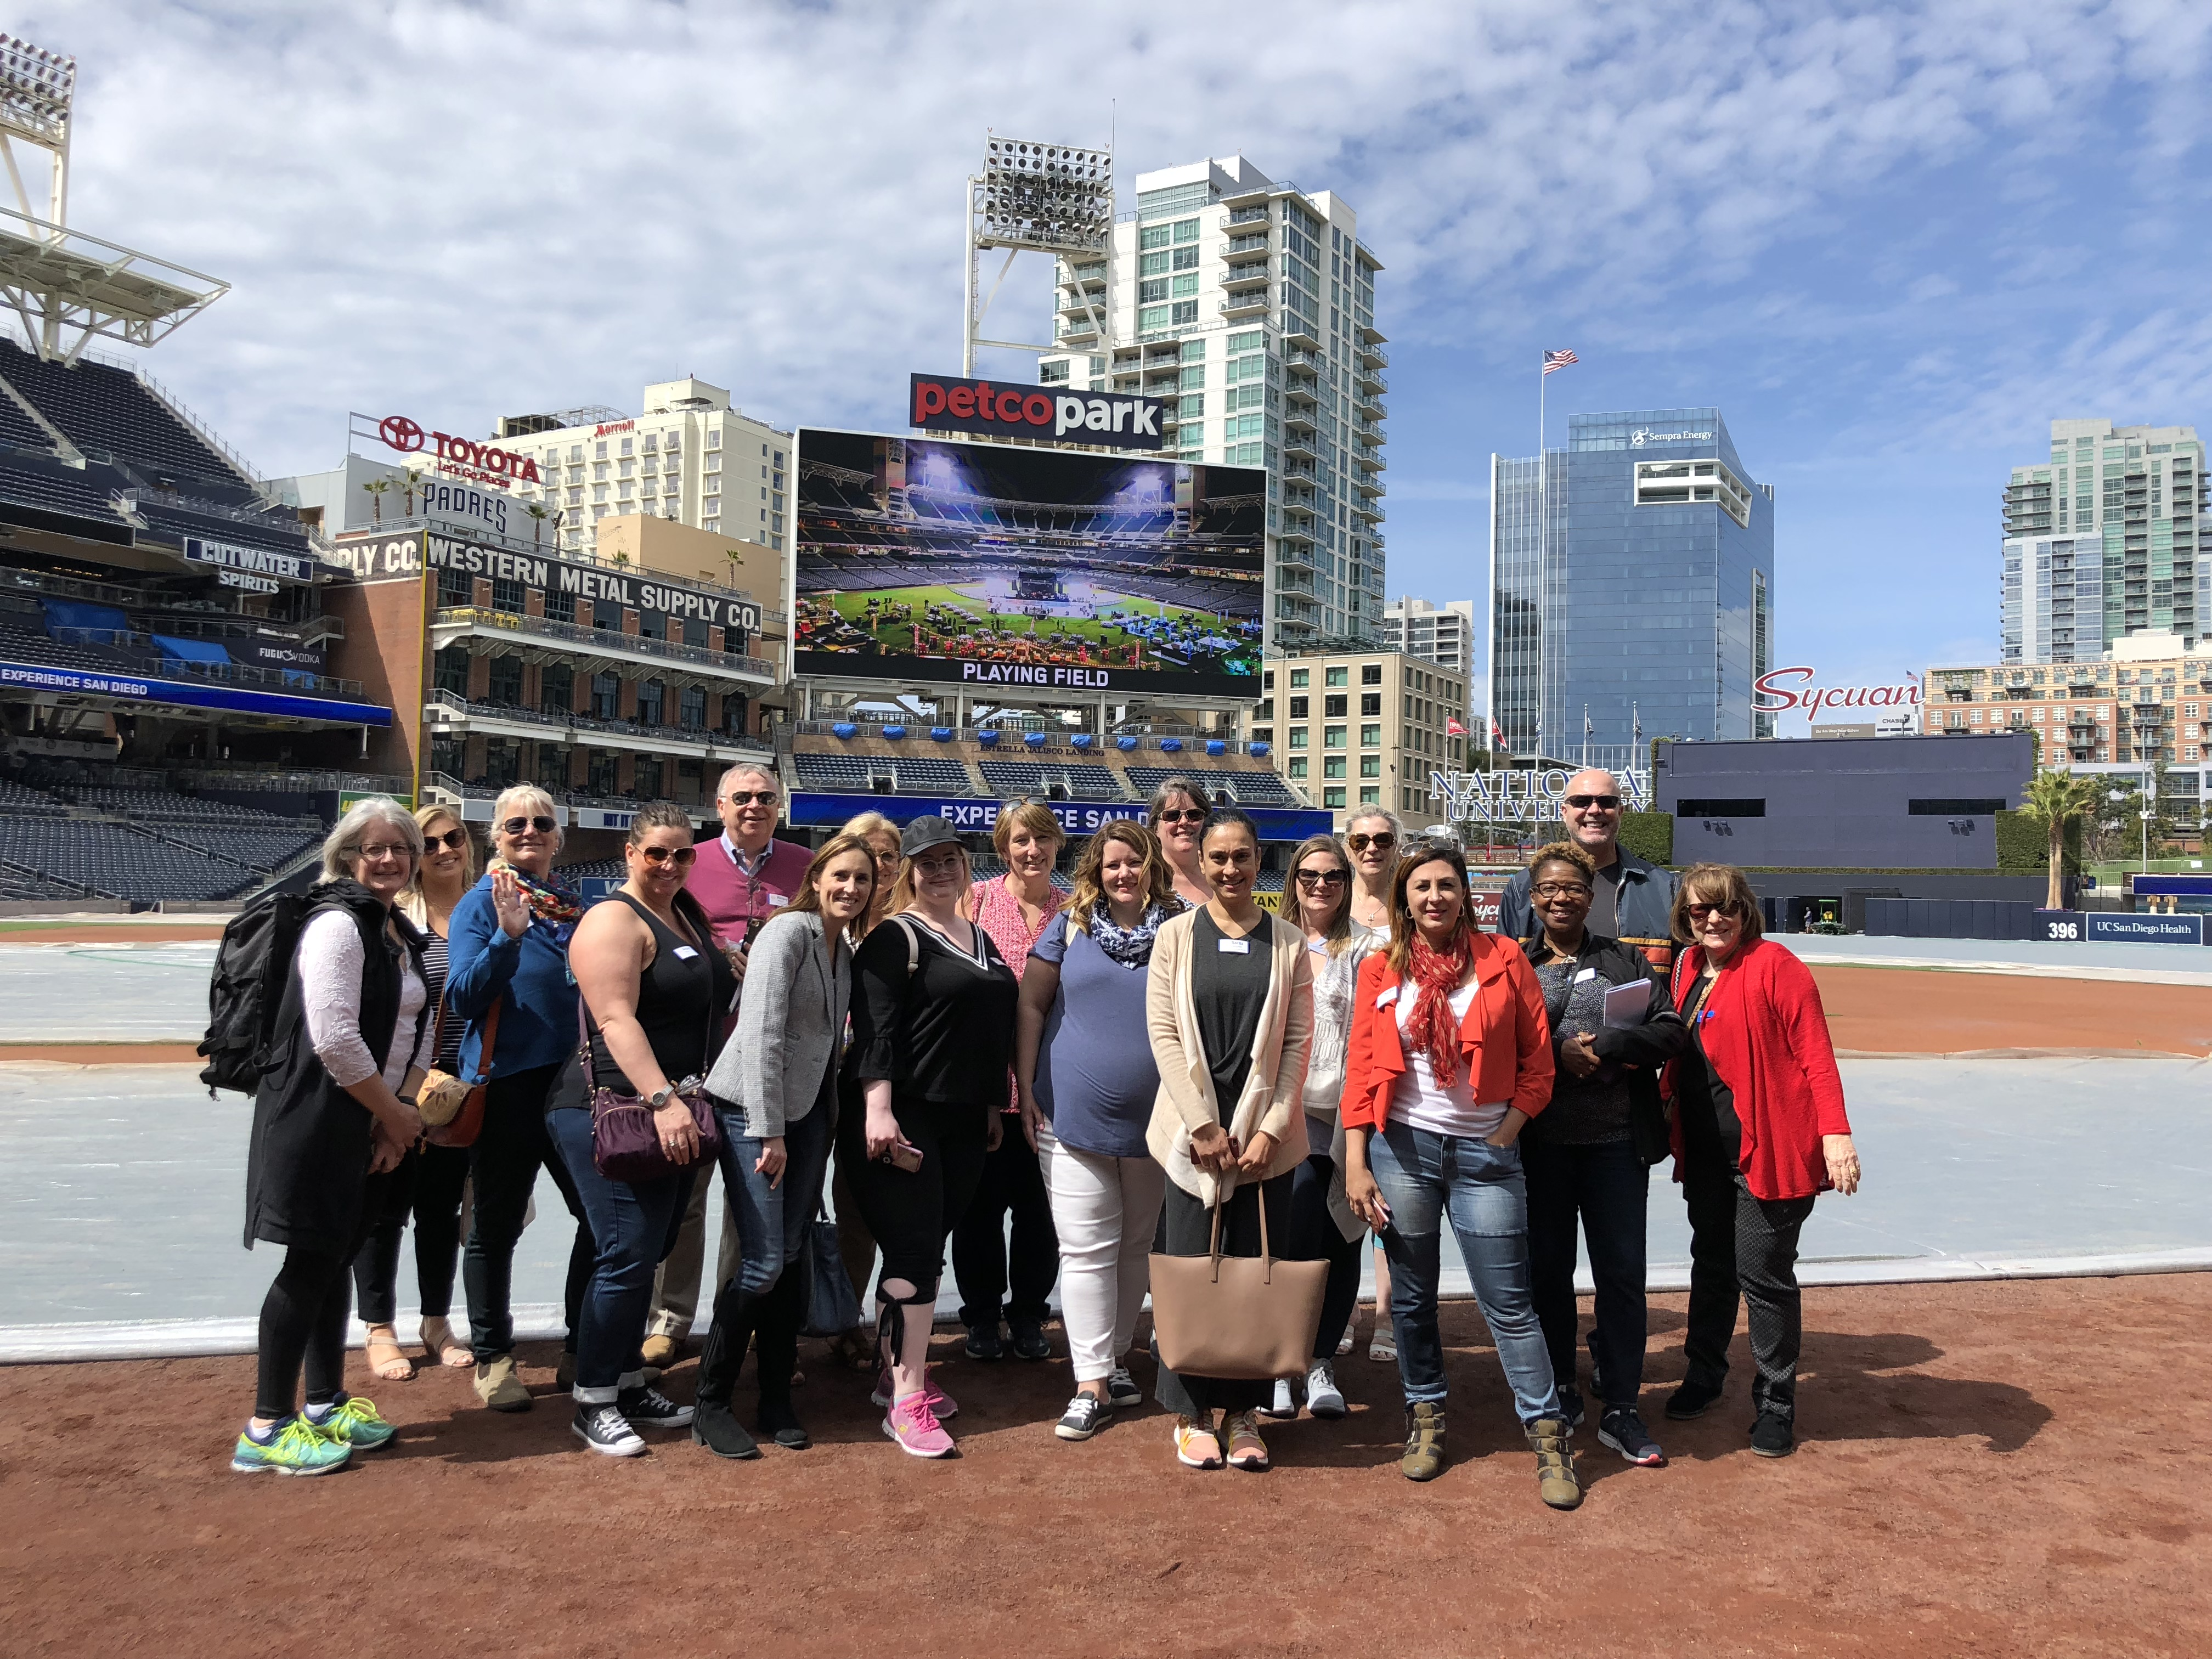 Meeting planners enjoying a tour of Petco Park - great for sports-themed meetings!